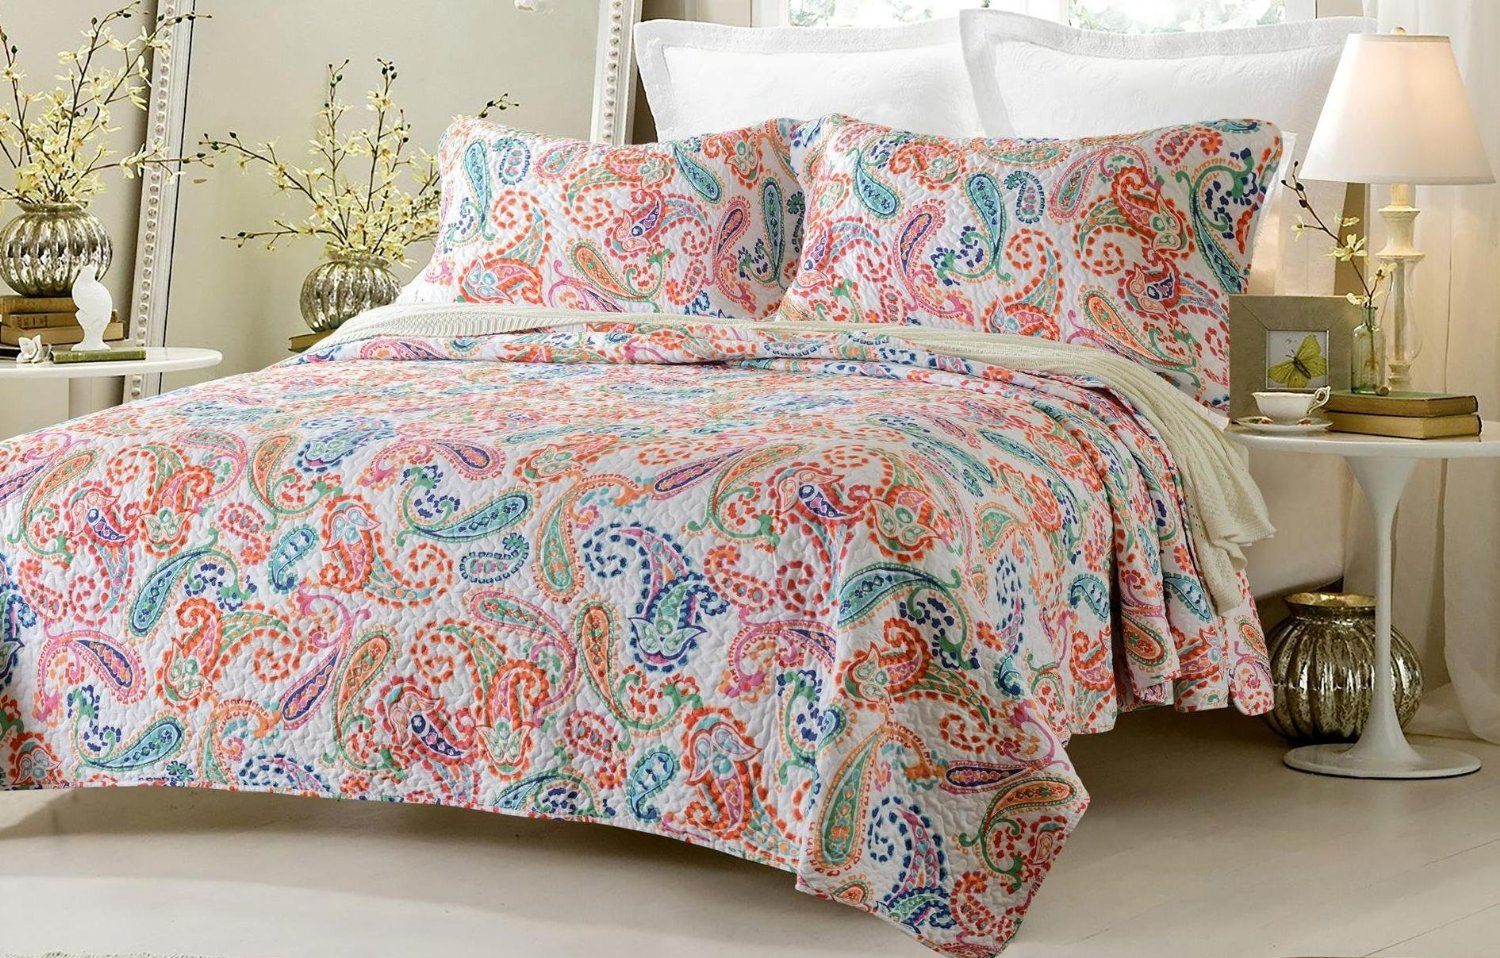 3pc Paisley Multi Color Printed Quilt Set Style # 1004 - Full/Queen